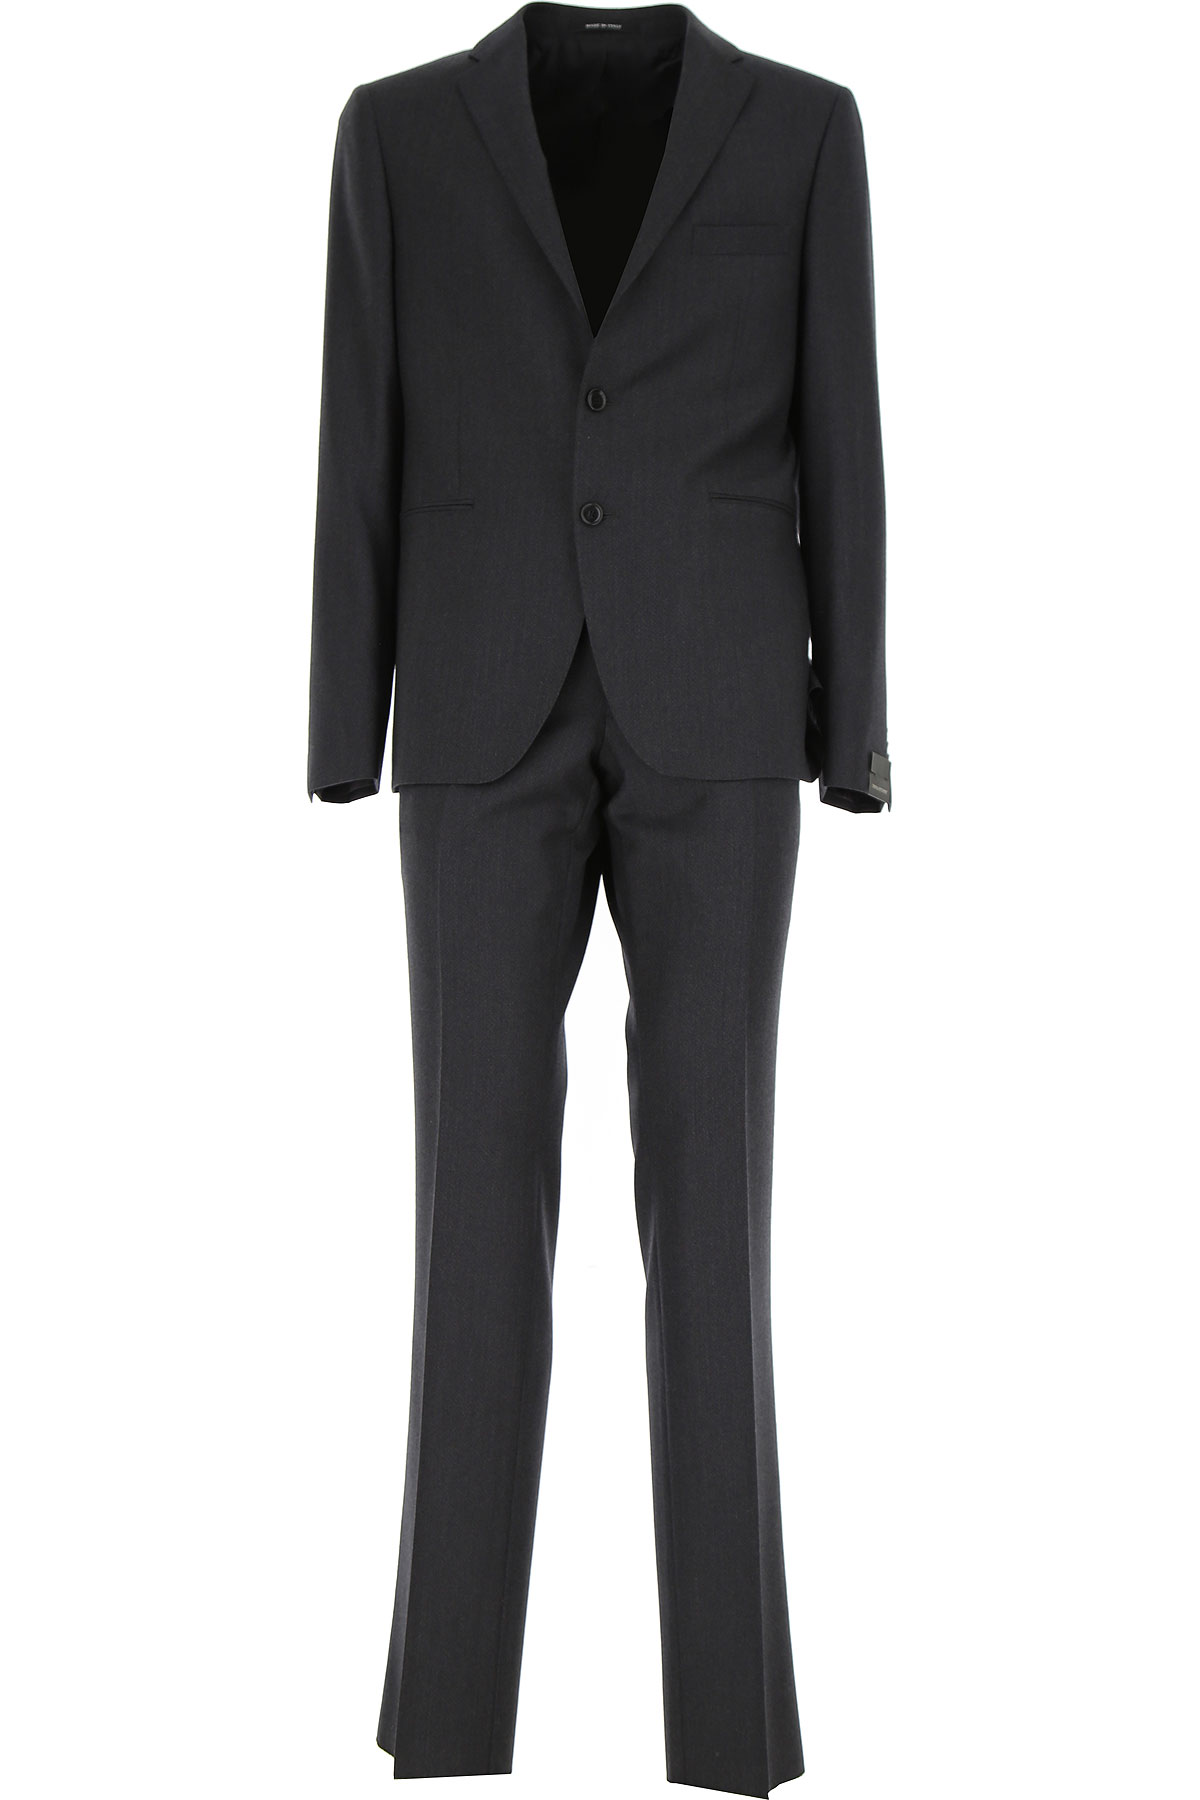 Tagliatore Men's Suit On Sale in Outlet, Dark Grey, Virgin wool, 2019, XL XXL